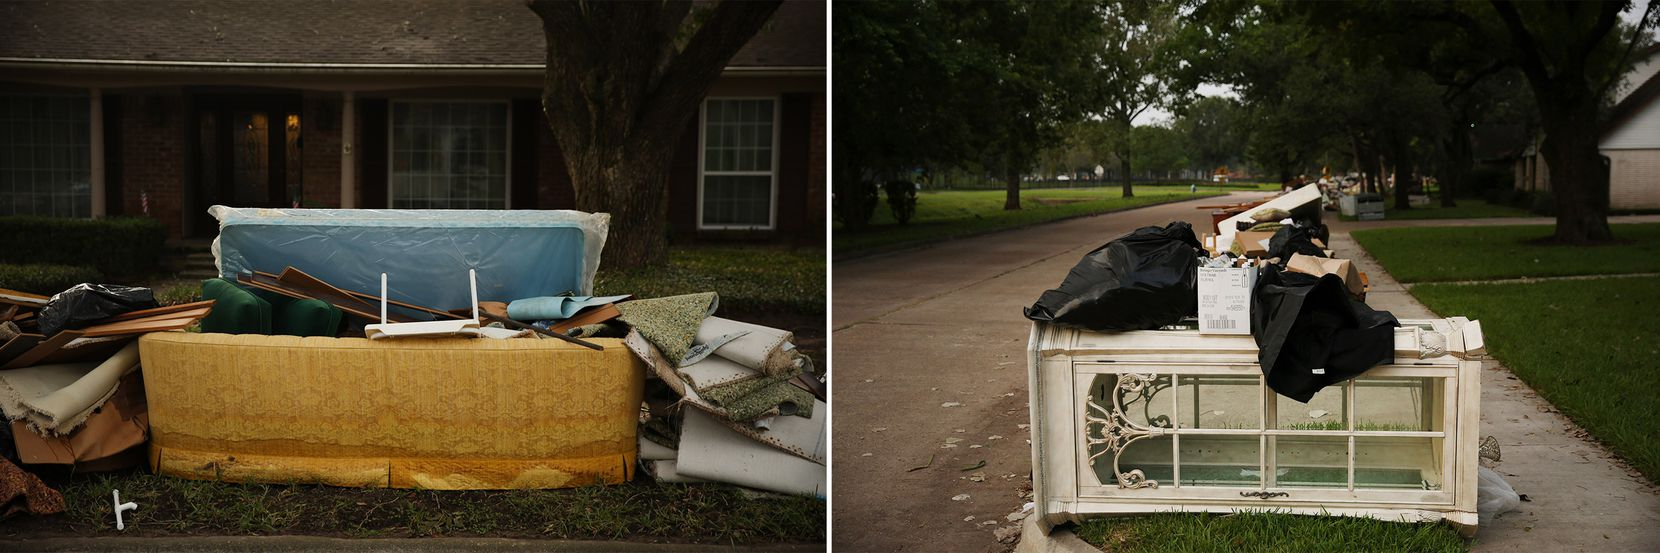 Furniture and carpet were a common sight in the neighborhood, where front lawns resembled junkyards a week after Harvey.